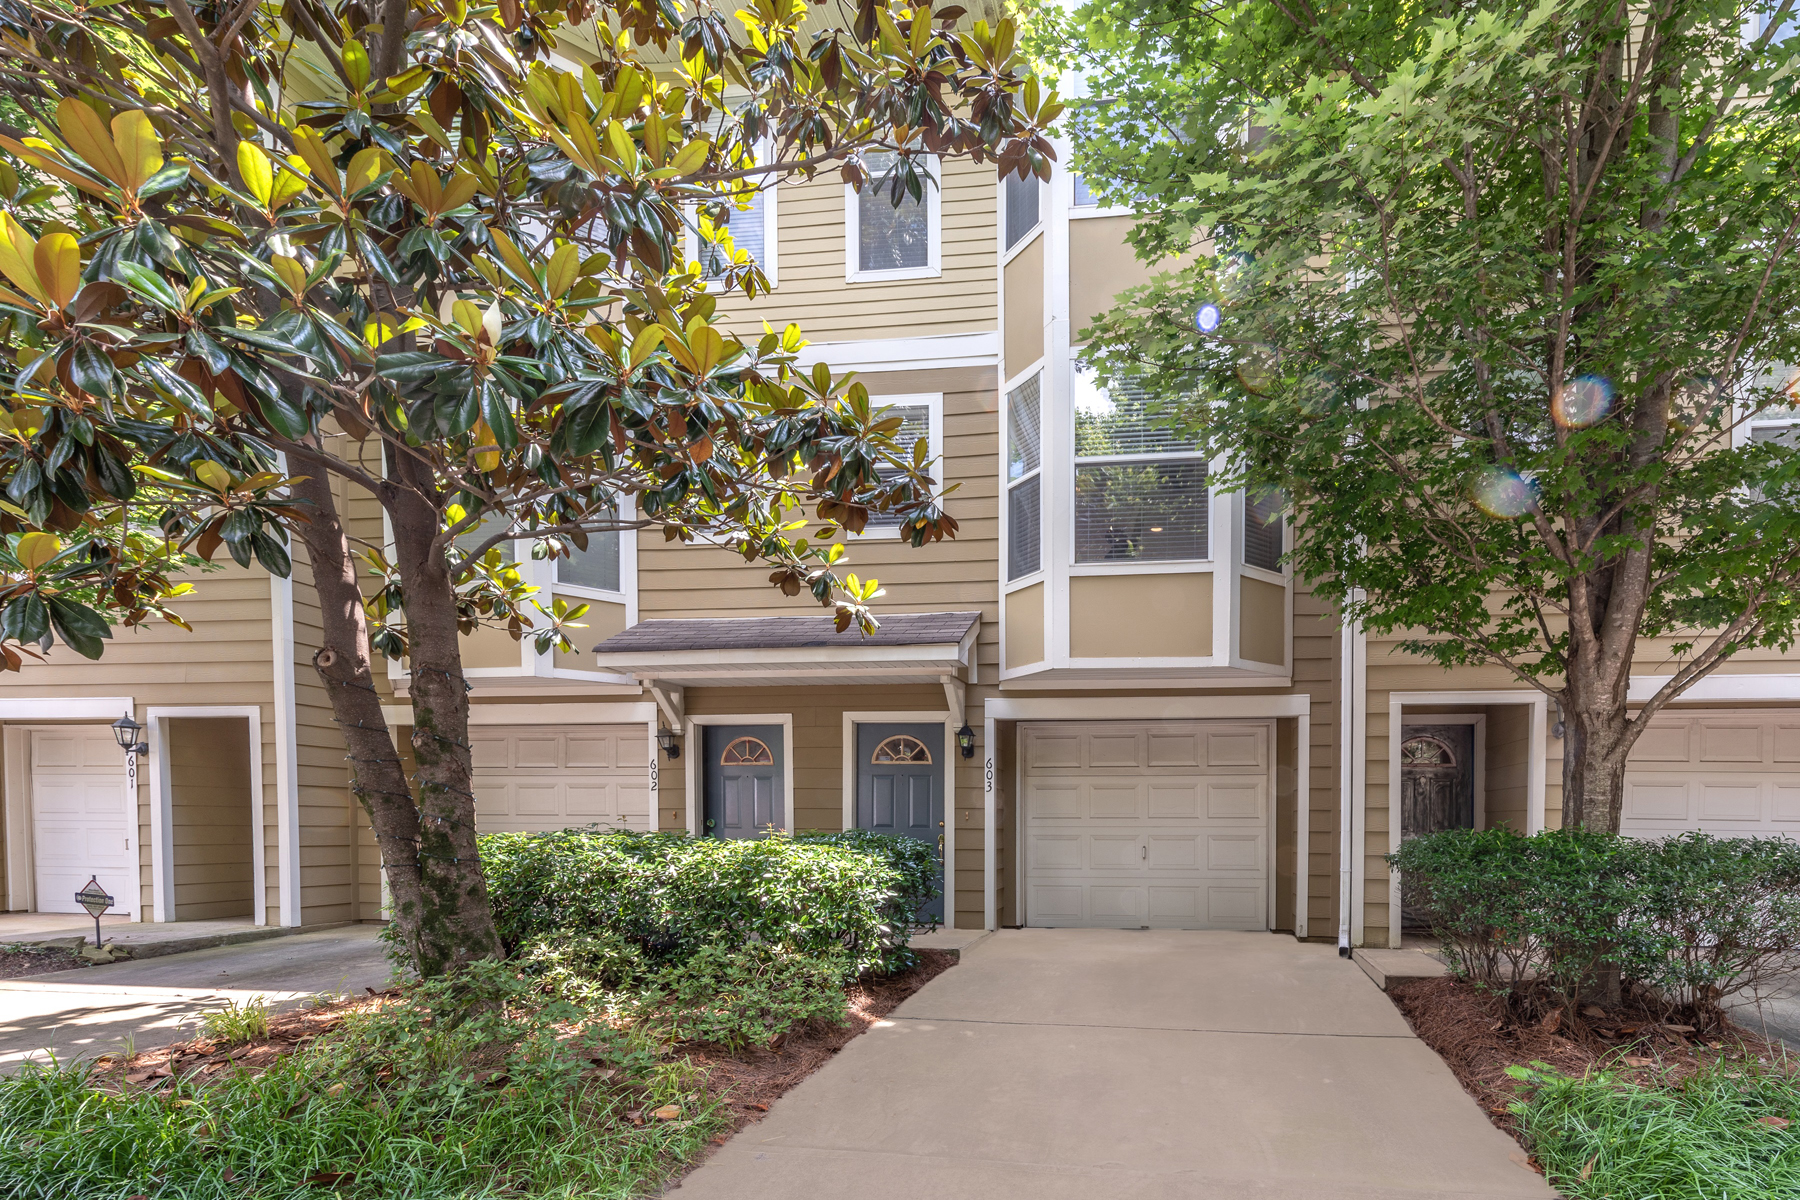 Townhouse for Sale at Recently Renovated Townhome 951 Glenwood Ave 603 Atlanta, Georgia 30316 United States